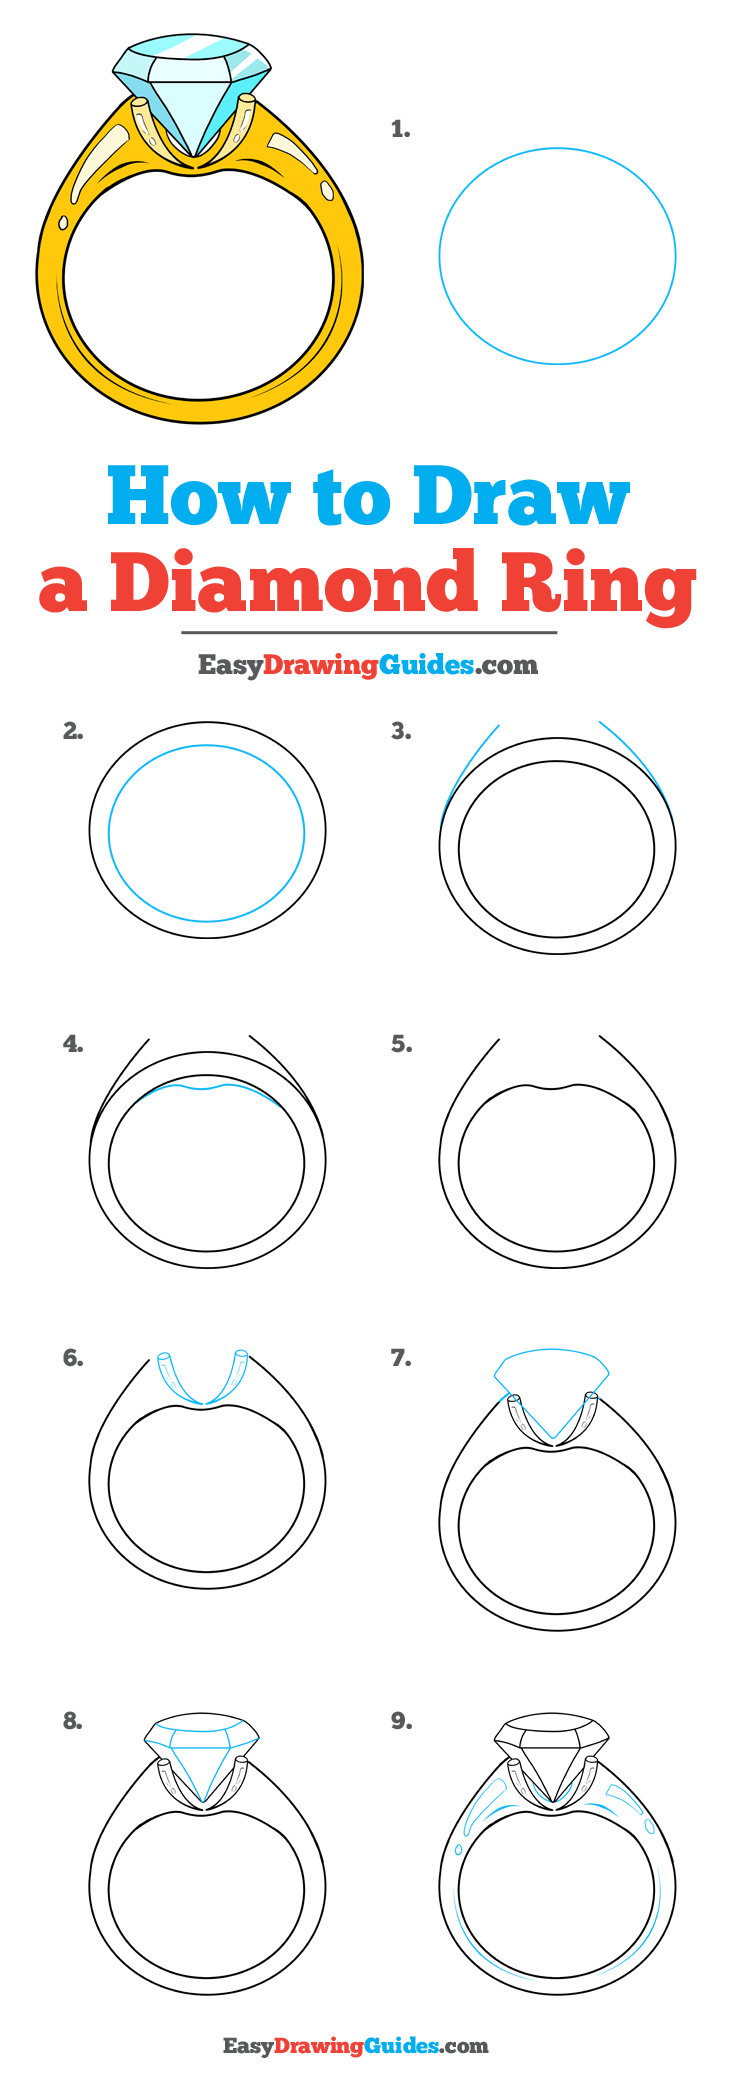 How to Draw Diamond Ring